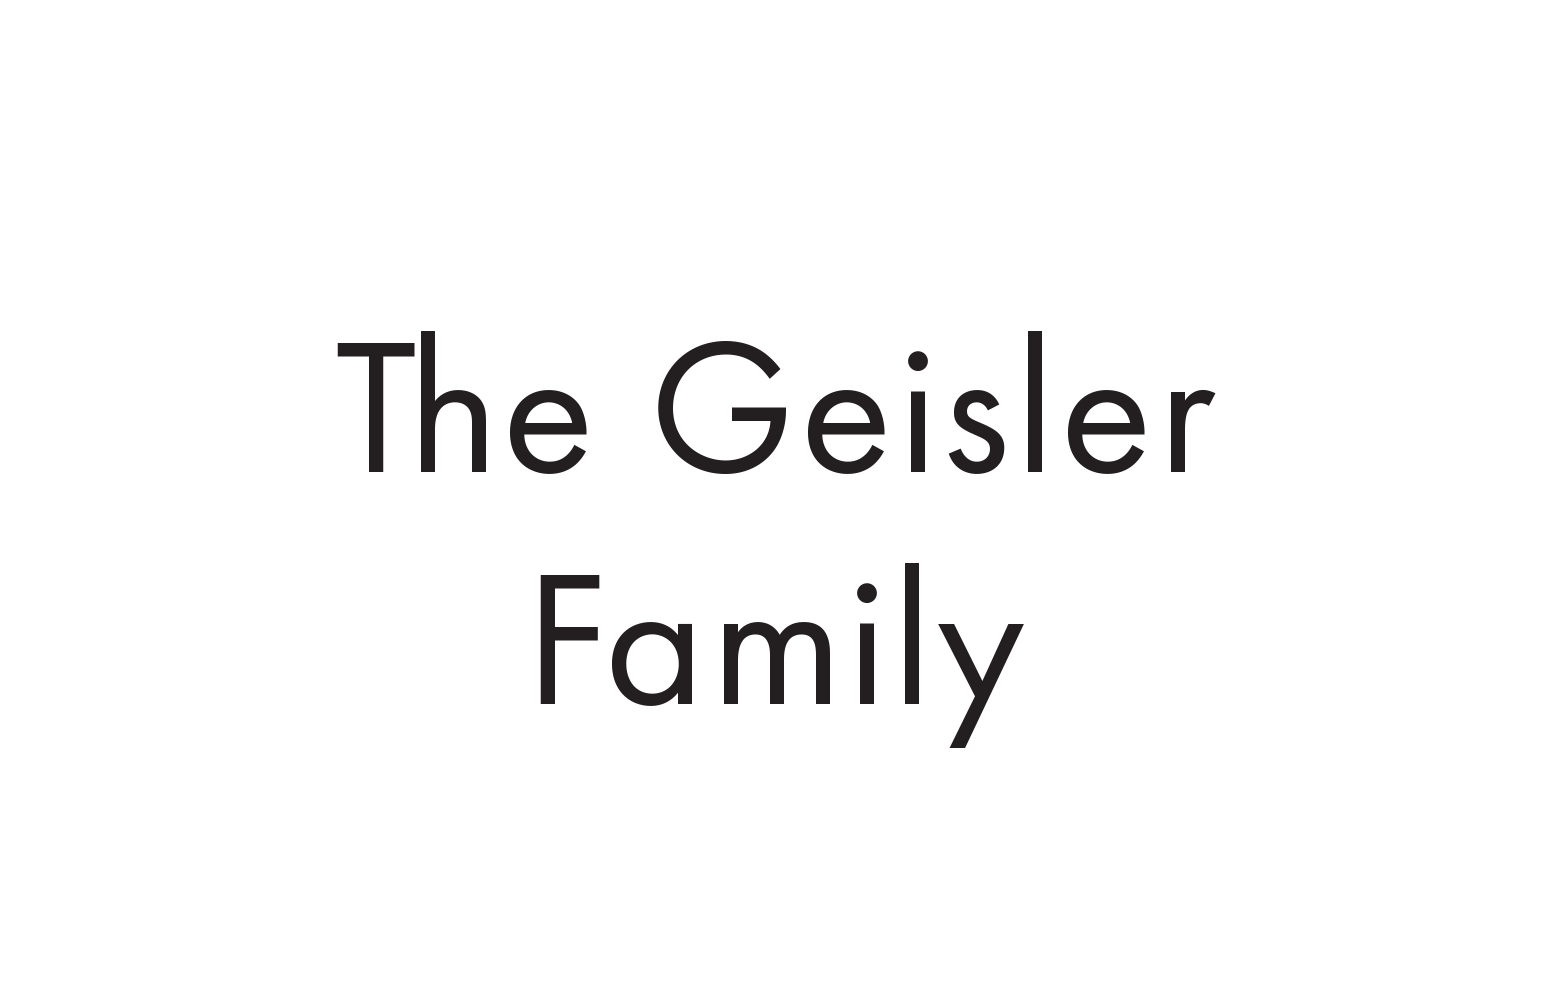 The Geisler Family